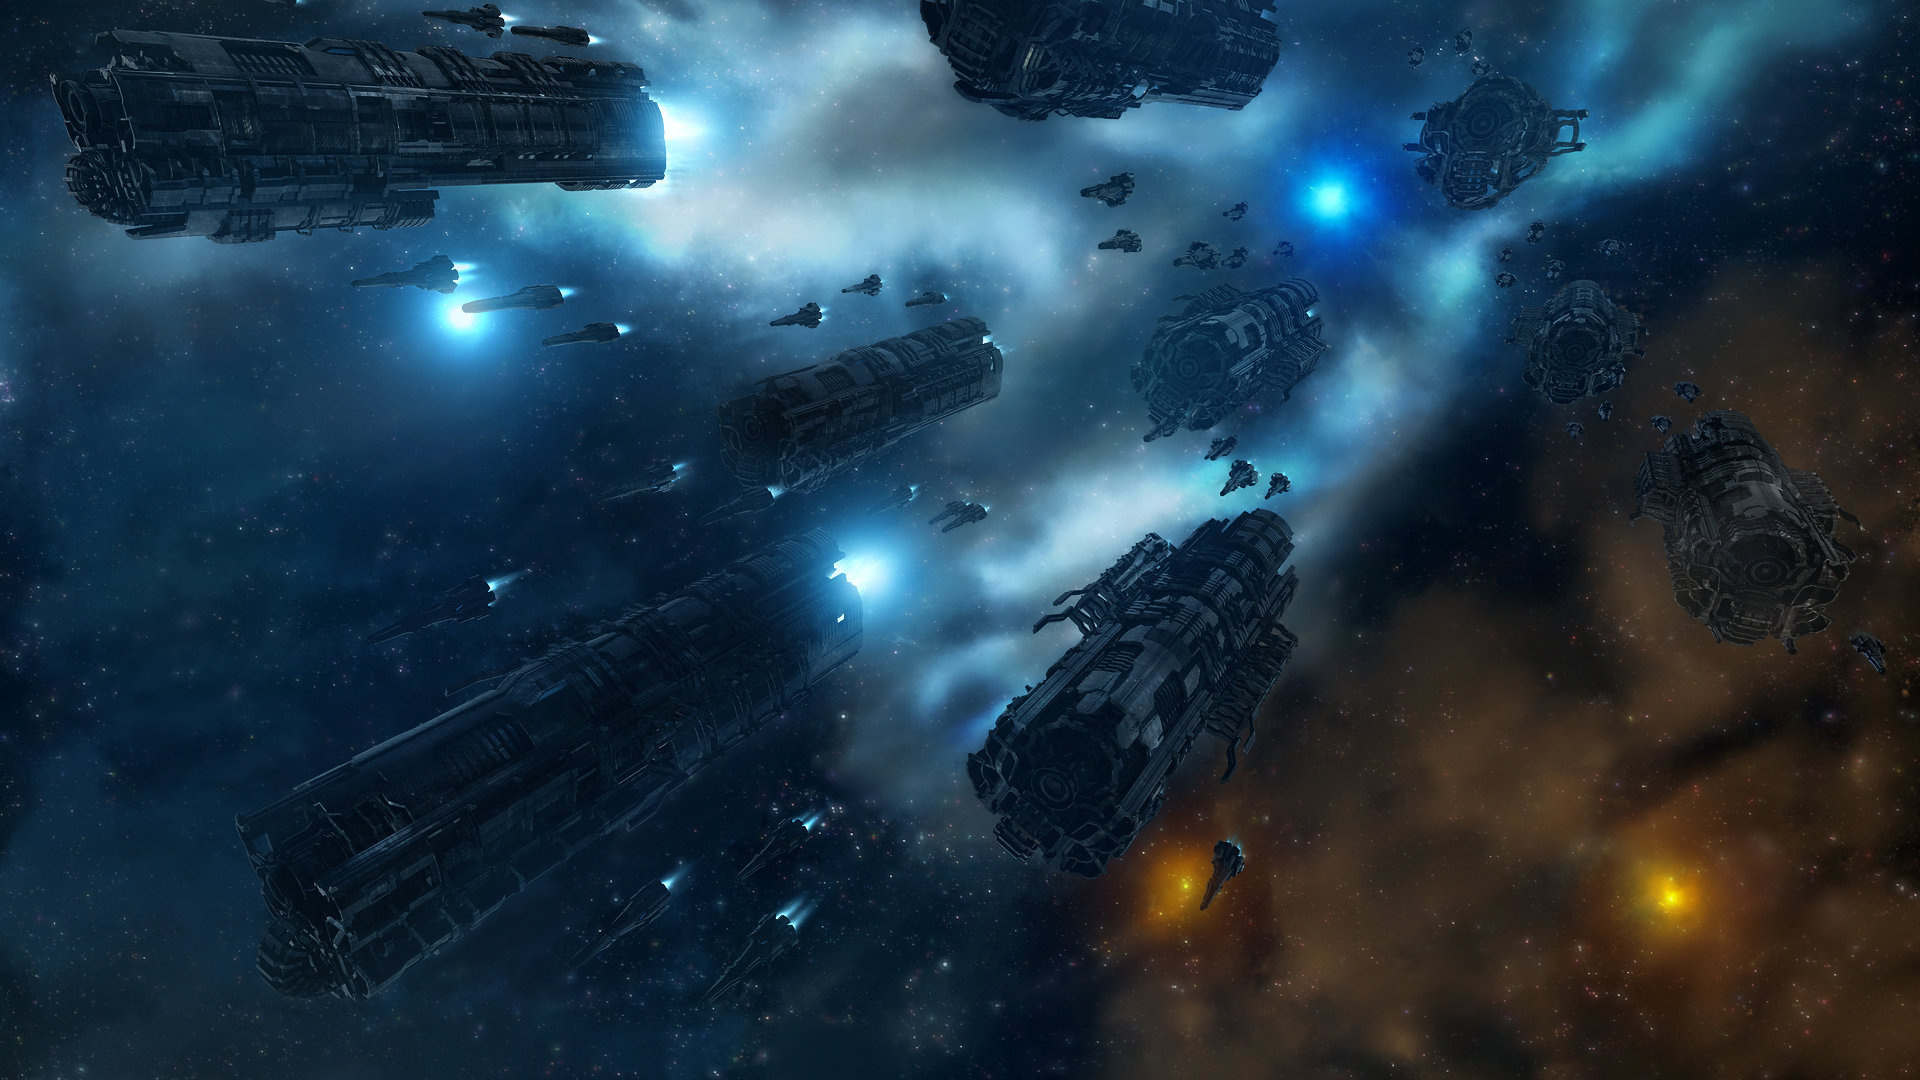 Gallery For > Space War Wallpaper